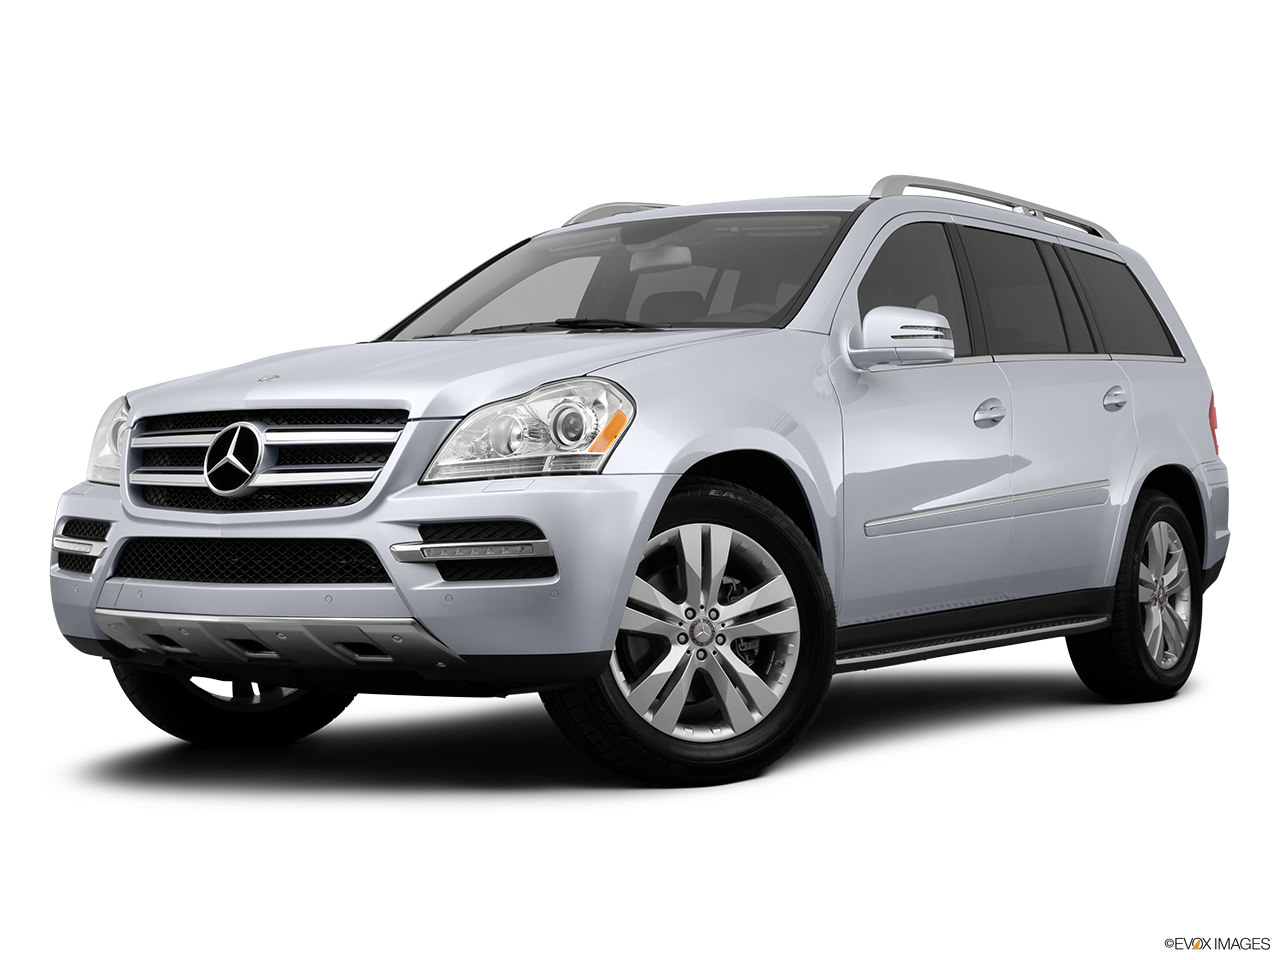 A Buyer's Guide to the 2012 Mercedes-Benz GL350 BlueTec